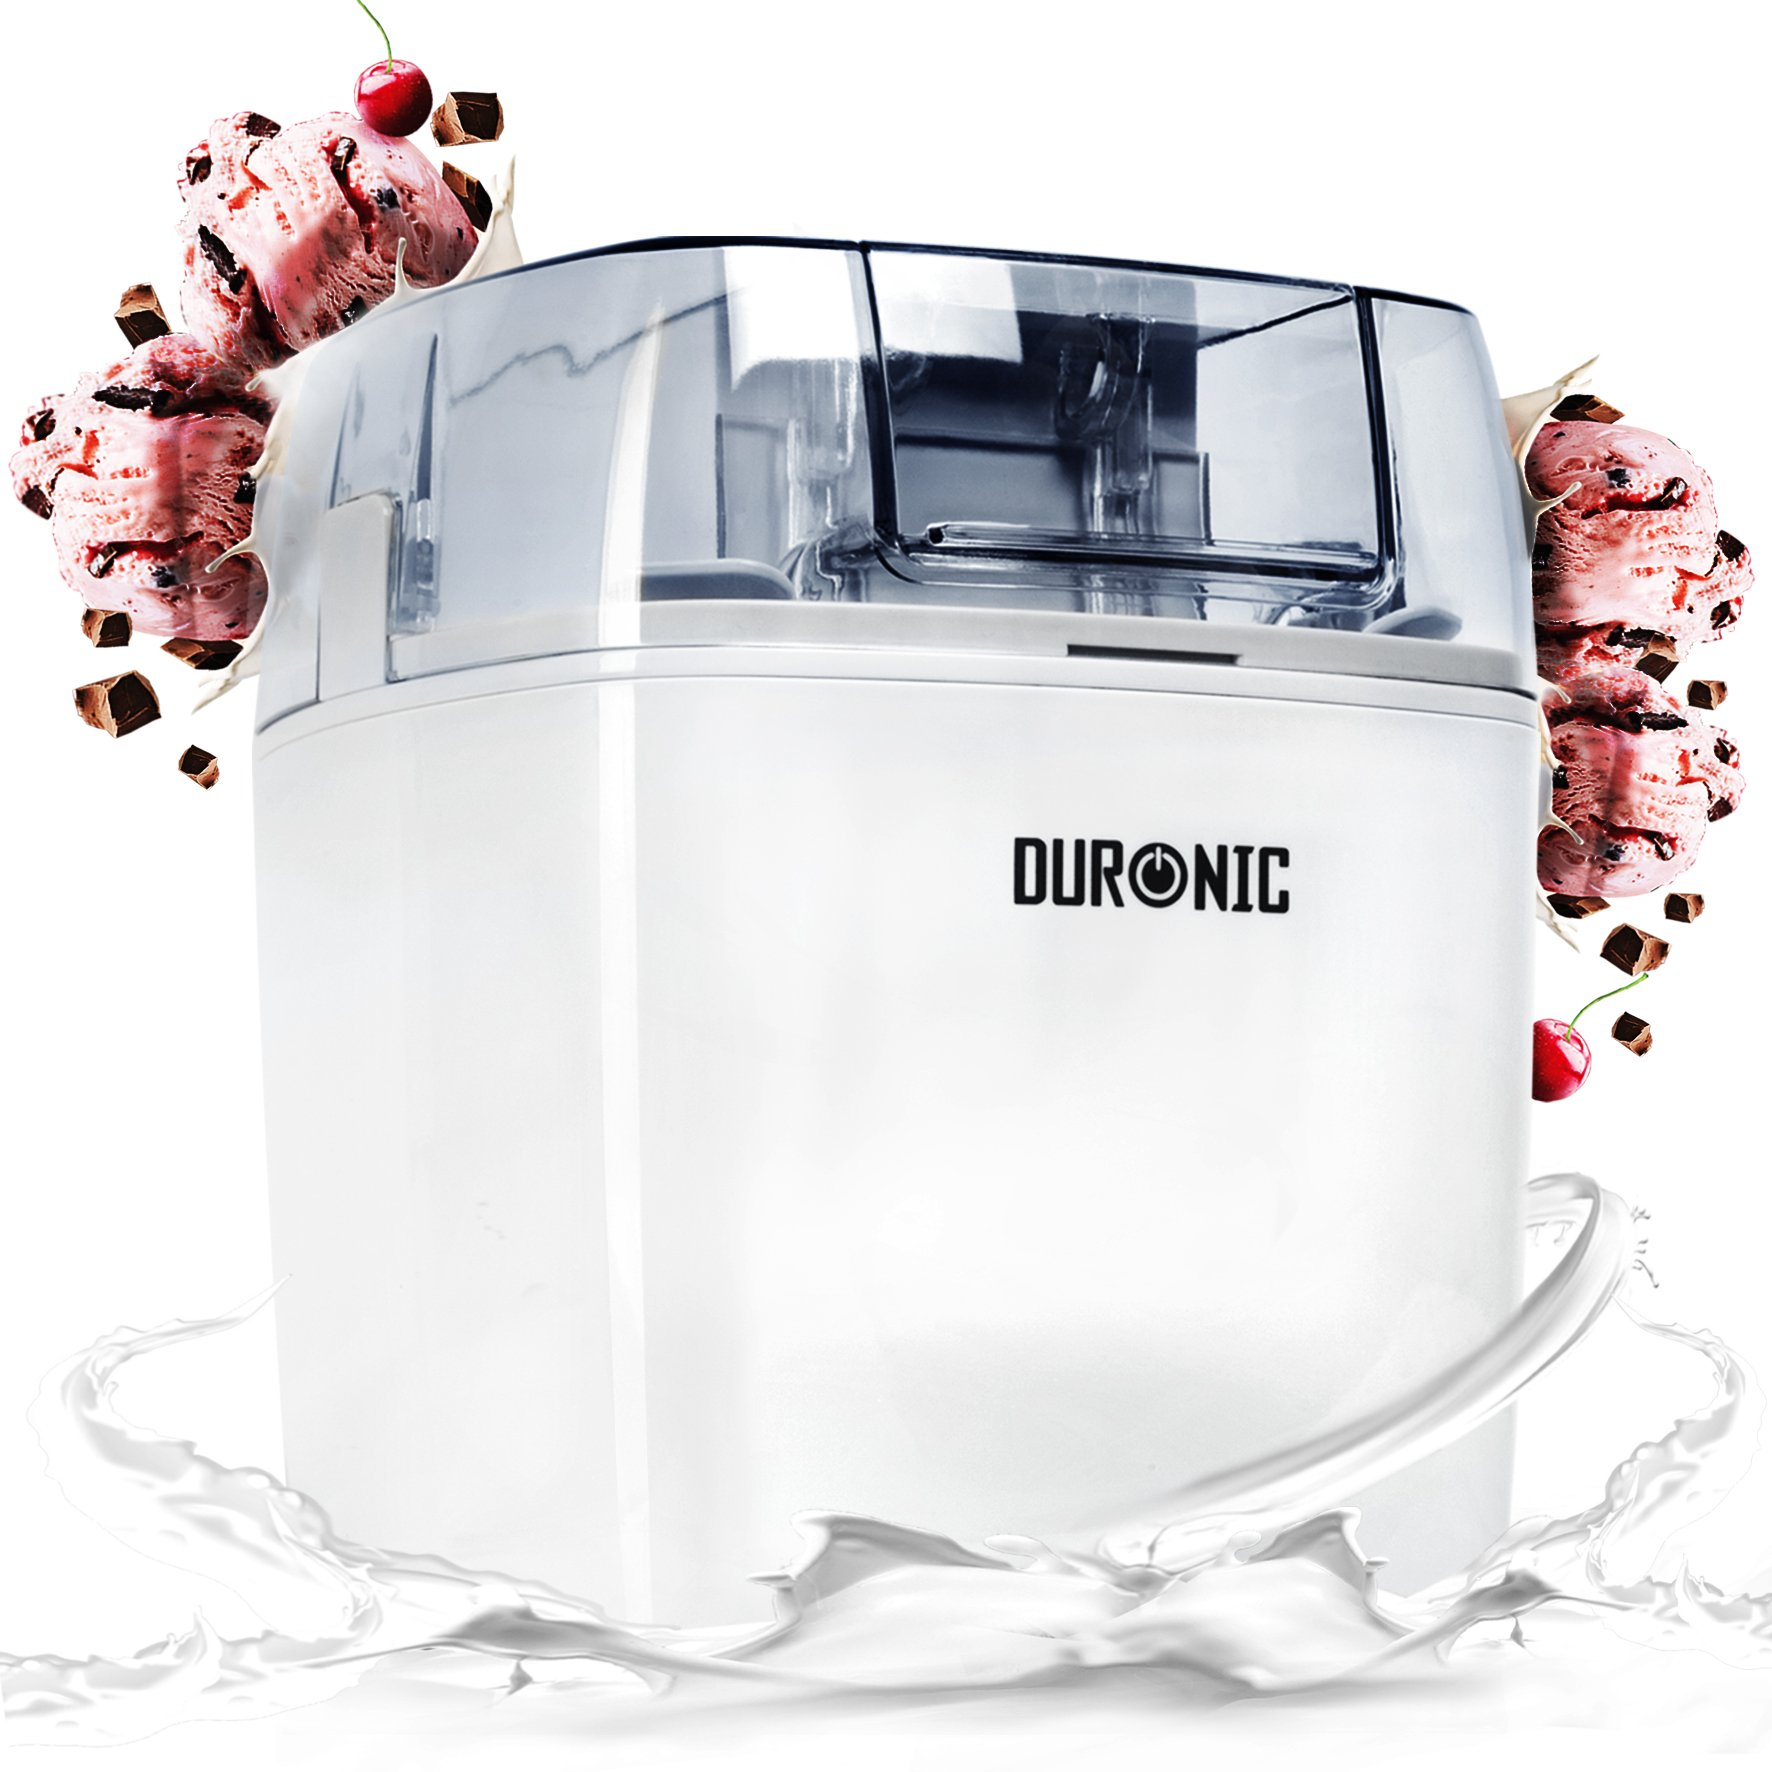 Duronic Ice Cream Maker IM540 | Create Homemade Frozen Desserts Like Gelato, Sorbet and Frozen Yogurt | 540W | 1.5L Freezing Bowl | Make Delicious Creamy Ice Cream in Your Own Kitchen in 30 Minutes                Cuisinart Ice Cream Deluxe, Pre-Freeze Ice Cream, Frozen Yoghurt and Sorbet Maker, Silver, ICE30BCU                Cuisinart Ice Cream and Gelato Maker | Makes Ice Cream, Gelato, Sorbet, Frozen Yoghurt | Stainless Steel | ICE100BCU